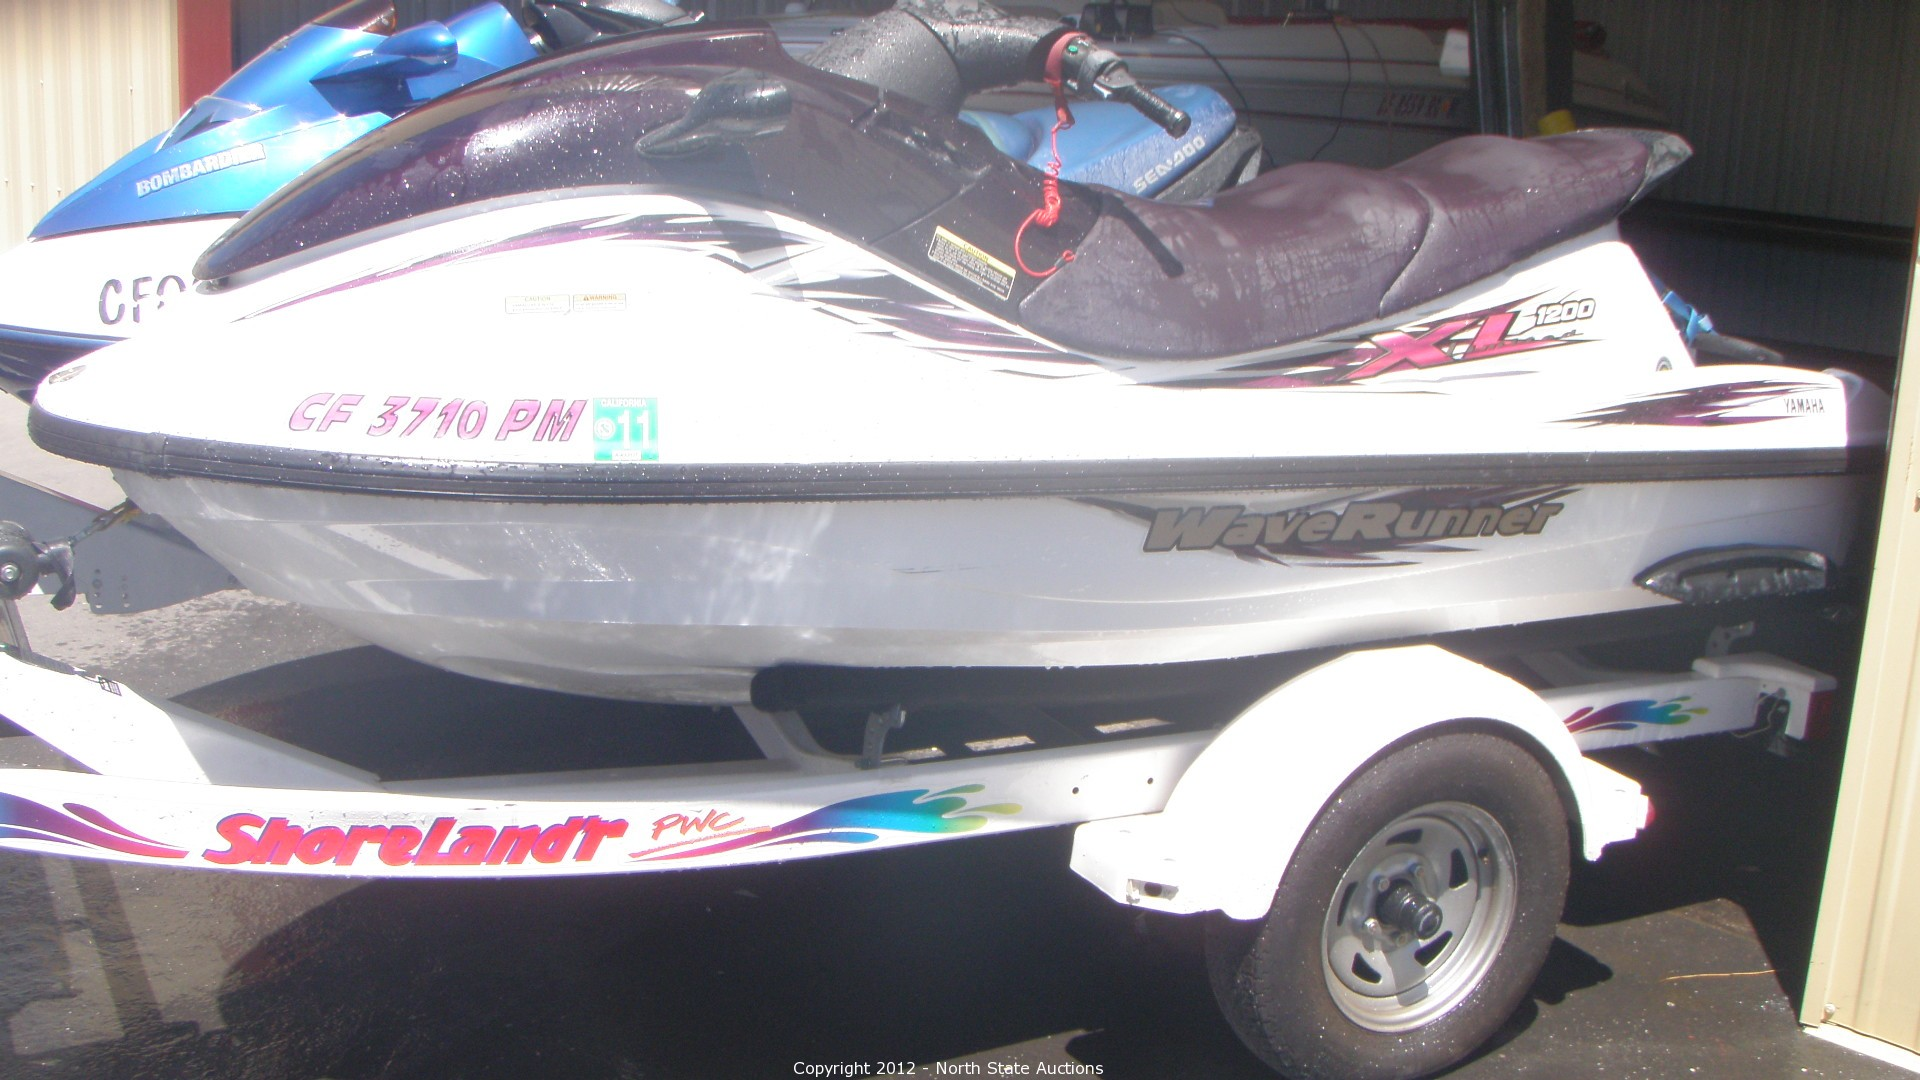 North State Auctions - Auction: Boats, Watercraft, Jet Skis, and